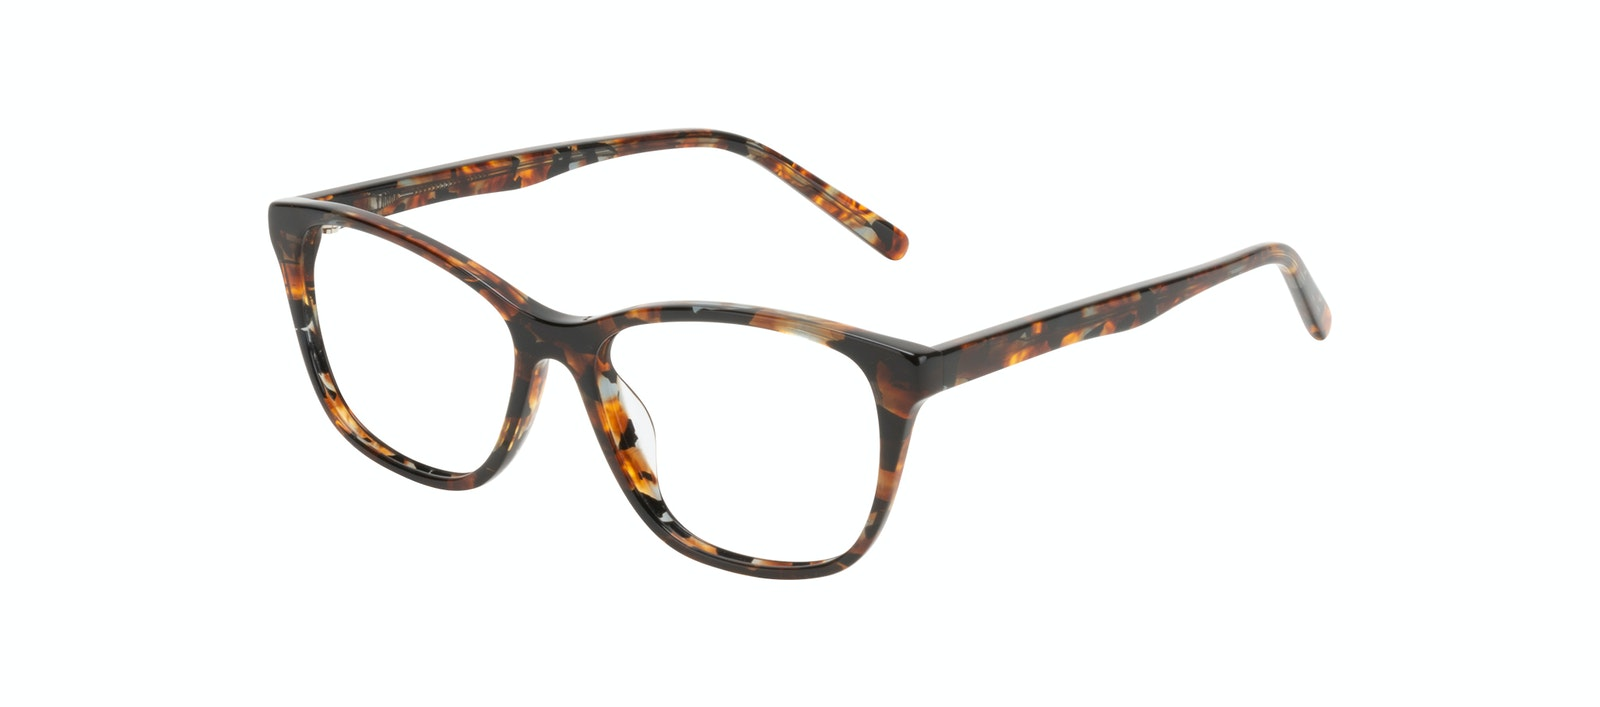 Affordable Fashion Glasses Cat Eye Eyeglasses Women Myrtle Petite Mahogany Tilt